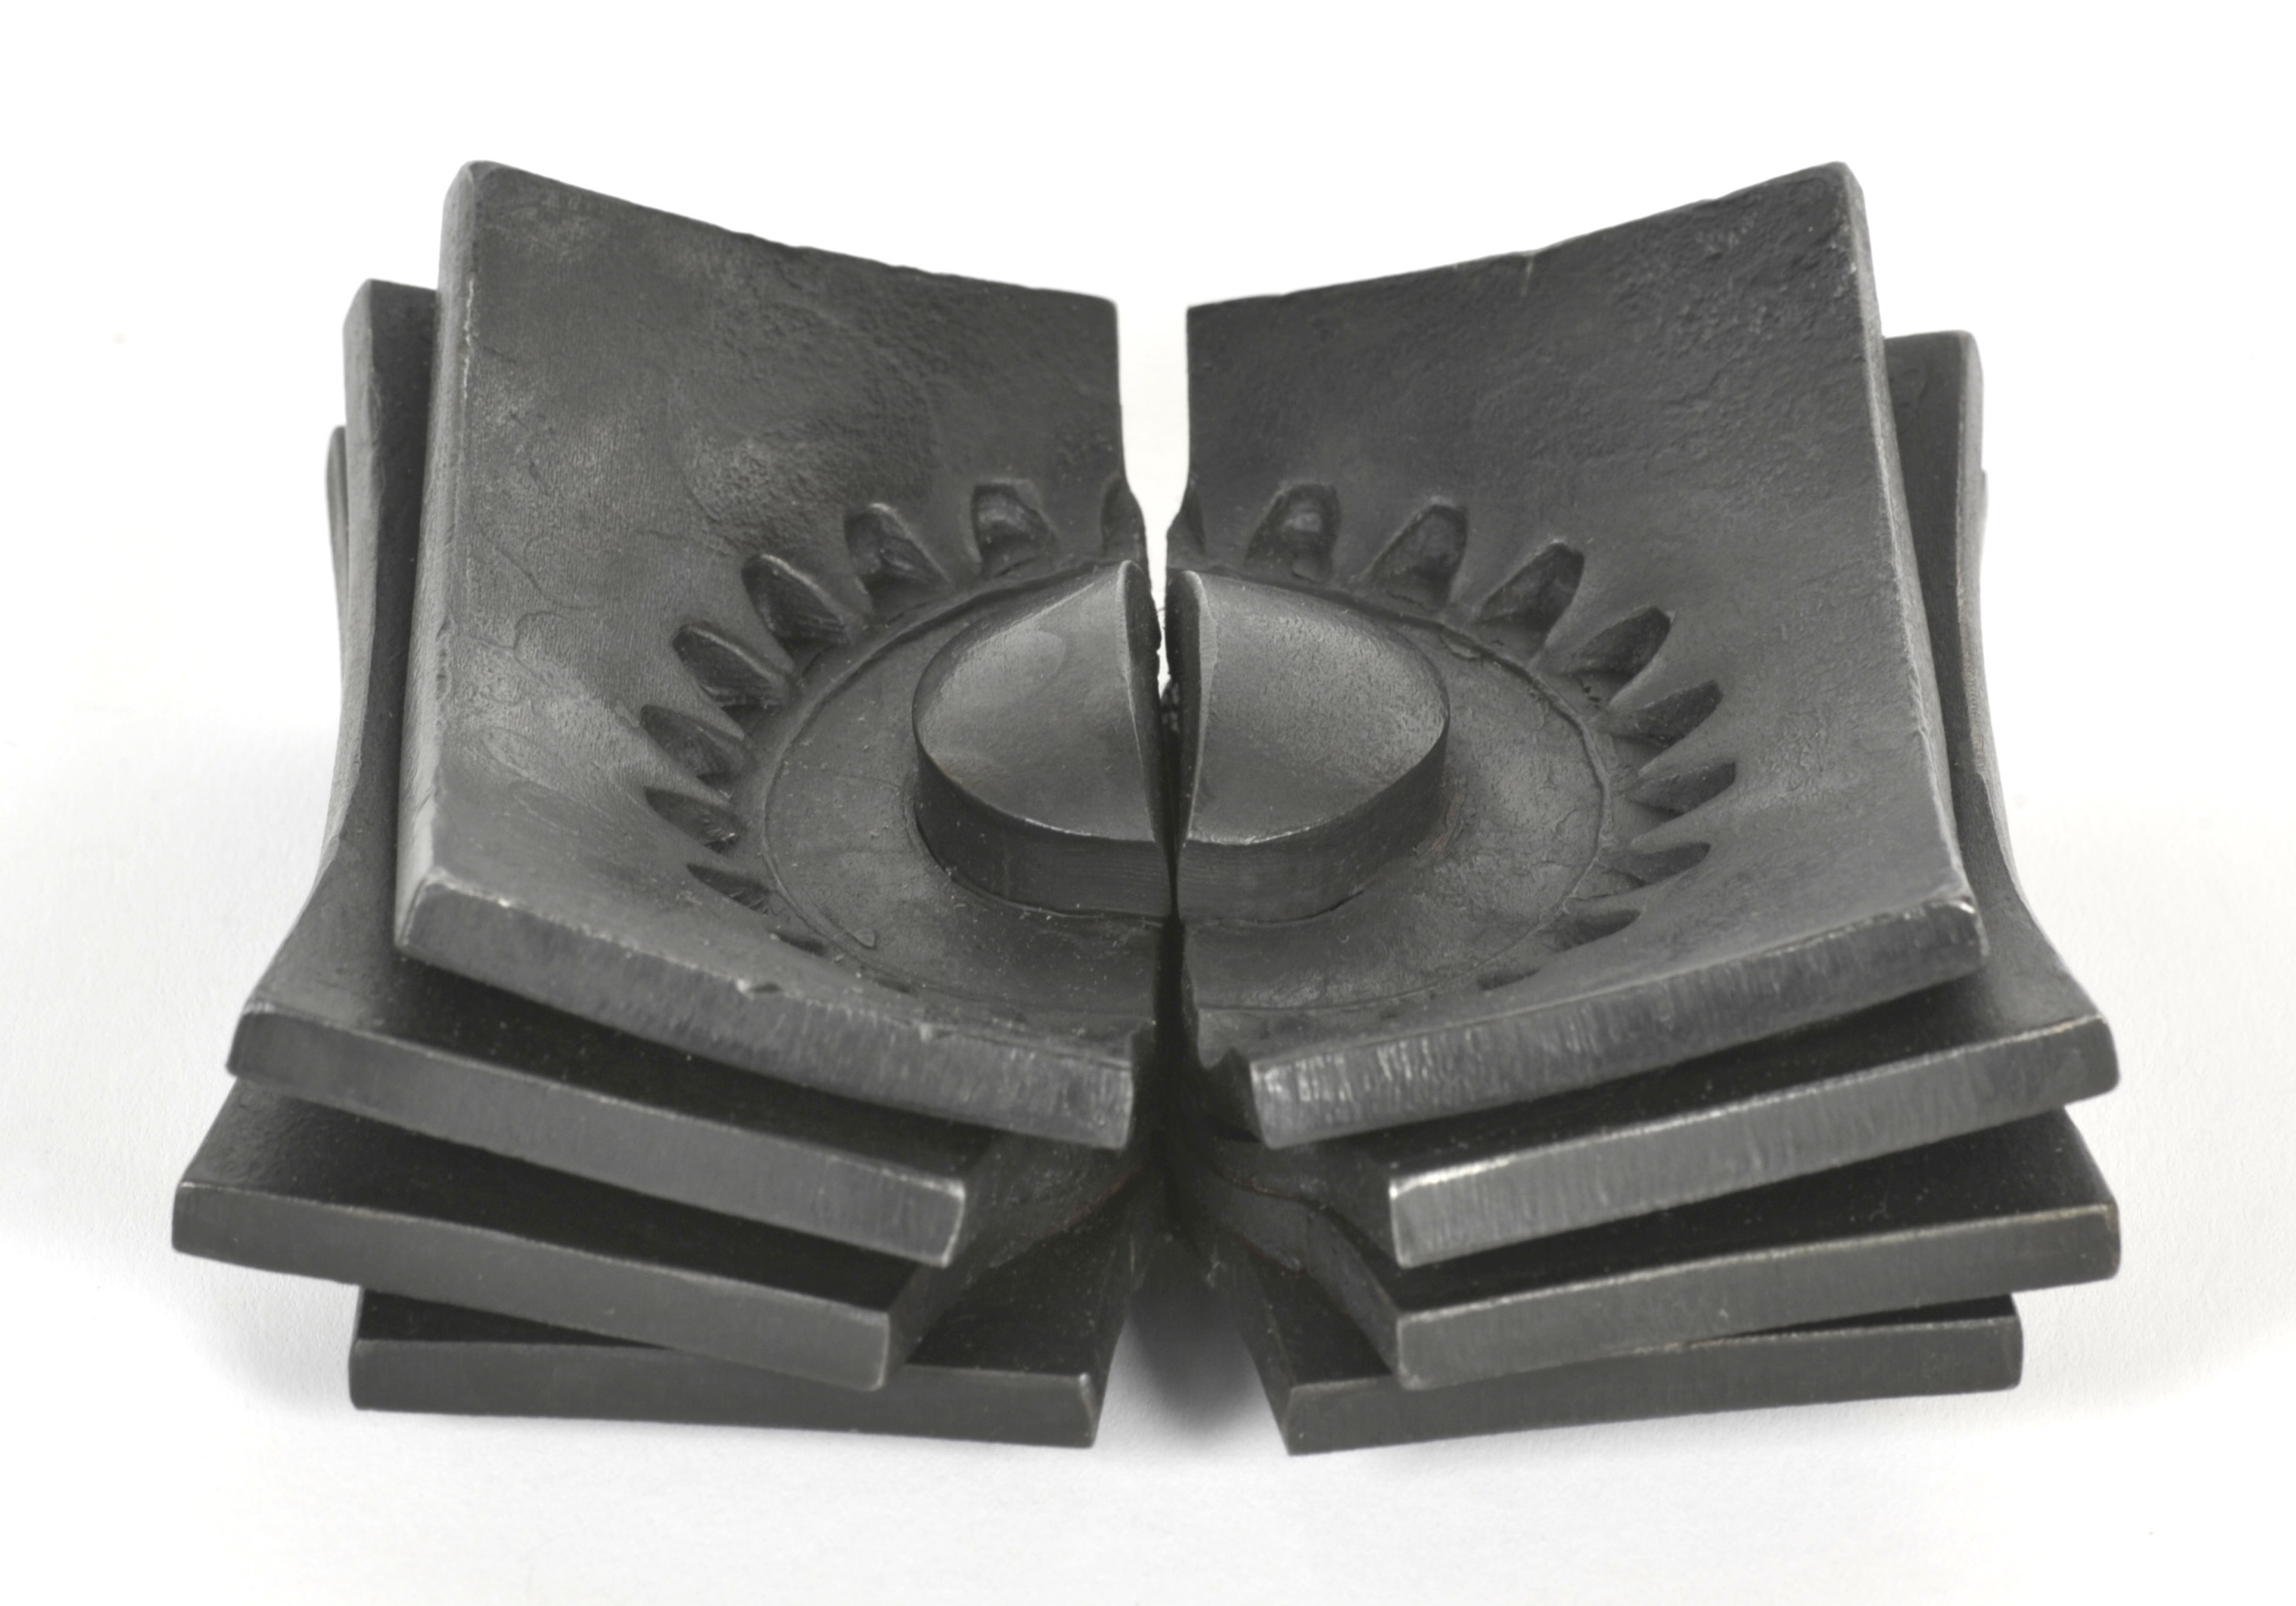 Maria Cristalli     Gear Print , 2012  Forged steel